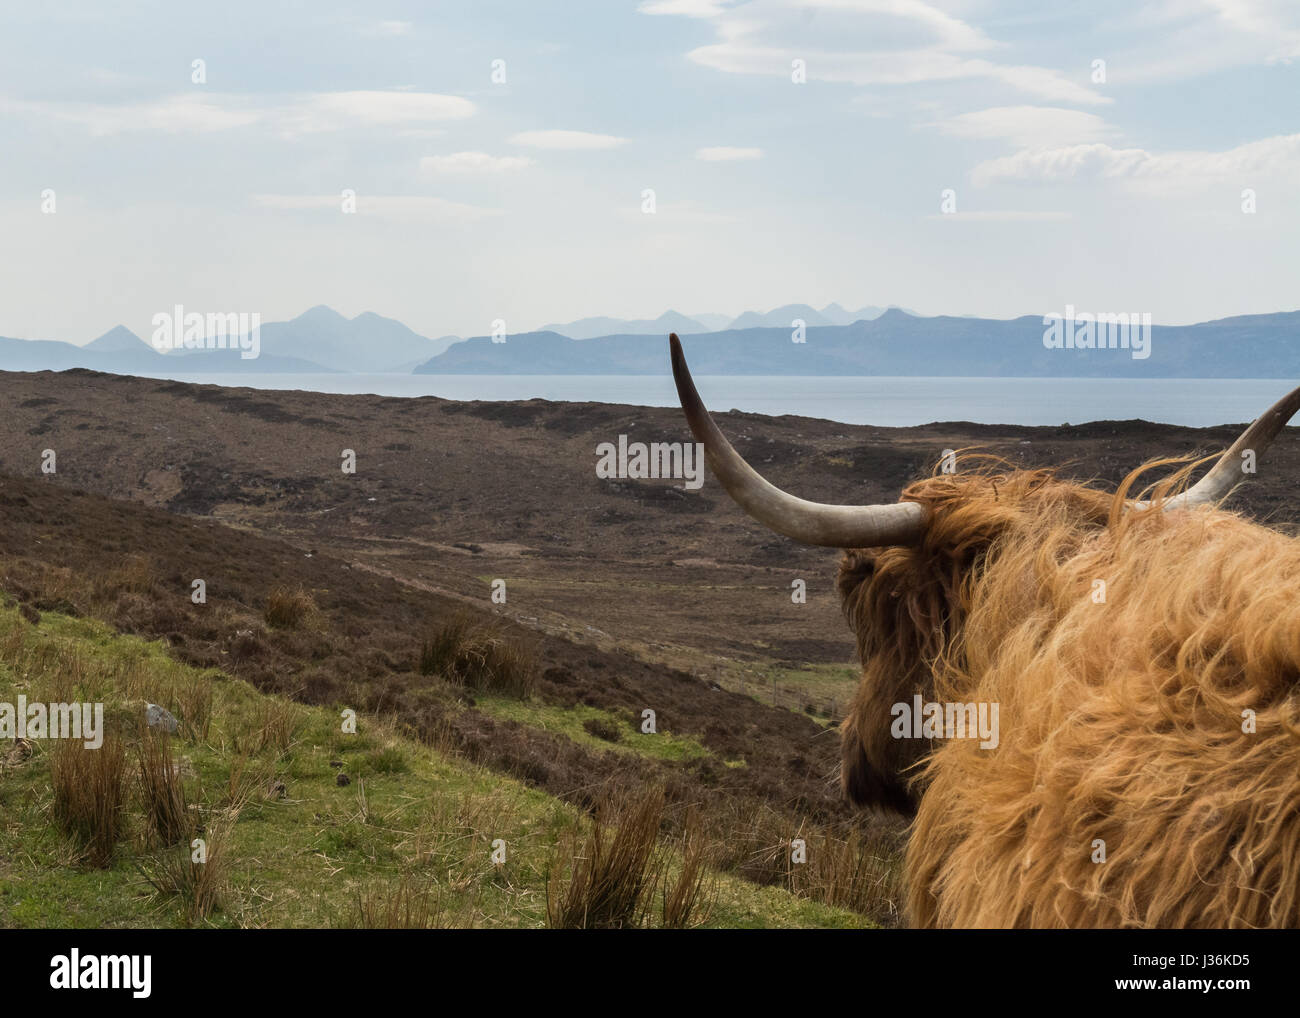 The Cuillins Cuillin range Isle of Skye seen through the horns of a Highland Cow near Applecross, Scottish Highlands - Stock Image